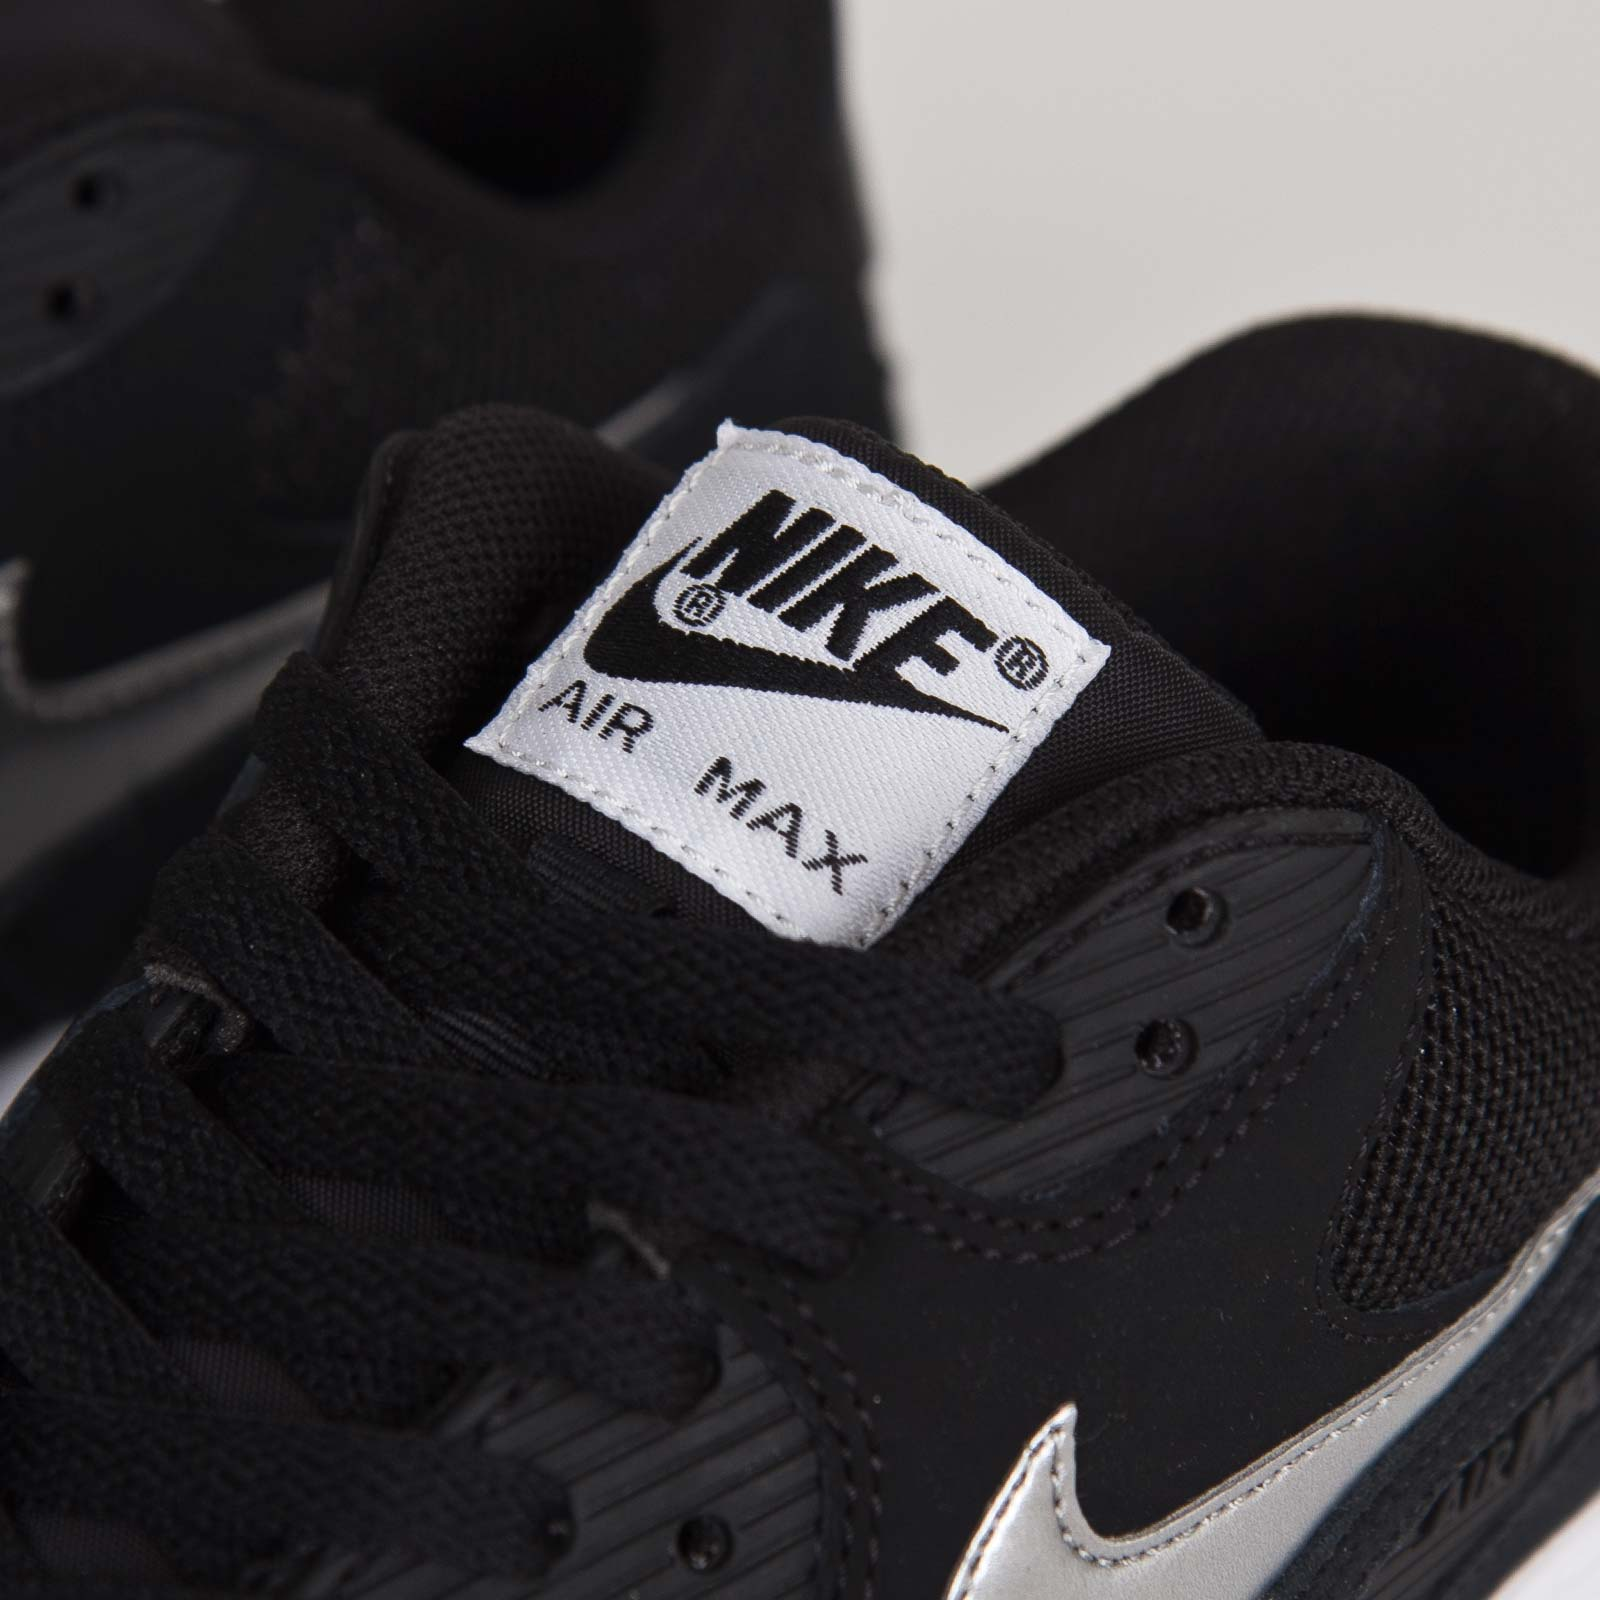 official photos 8f803 55b76 Nike Air Max 90 Essential - 537384-047 - Sneakersnstuff   sneakers    streetwear online since 1999